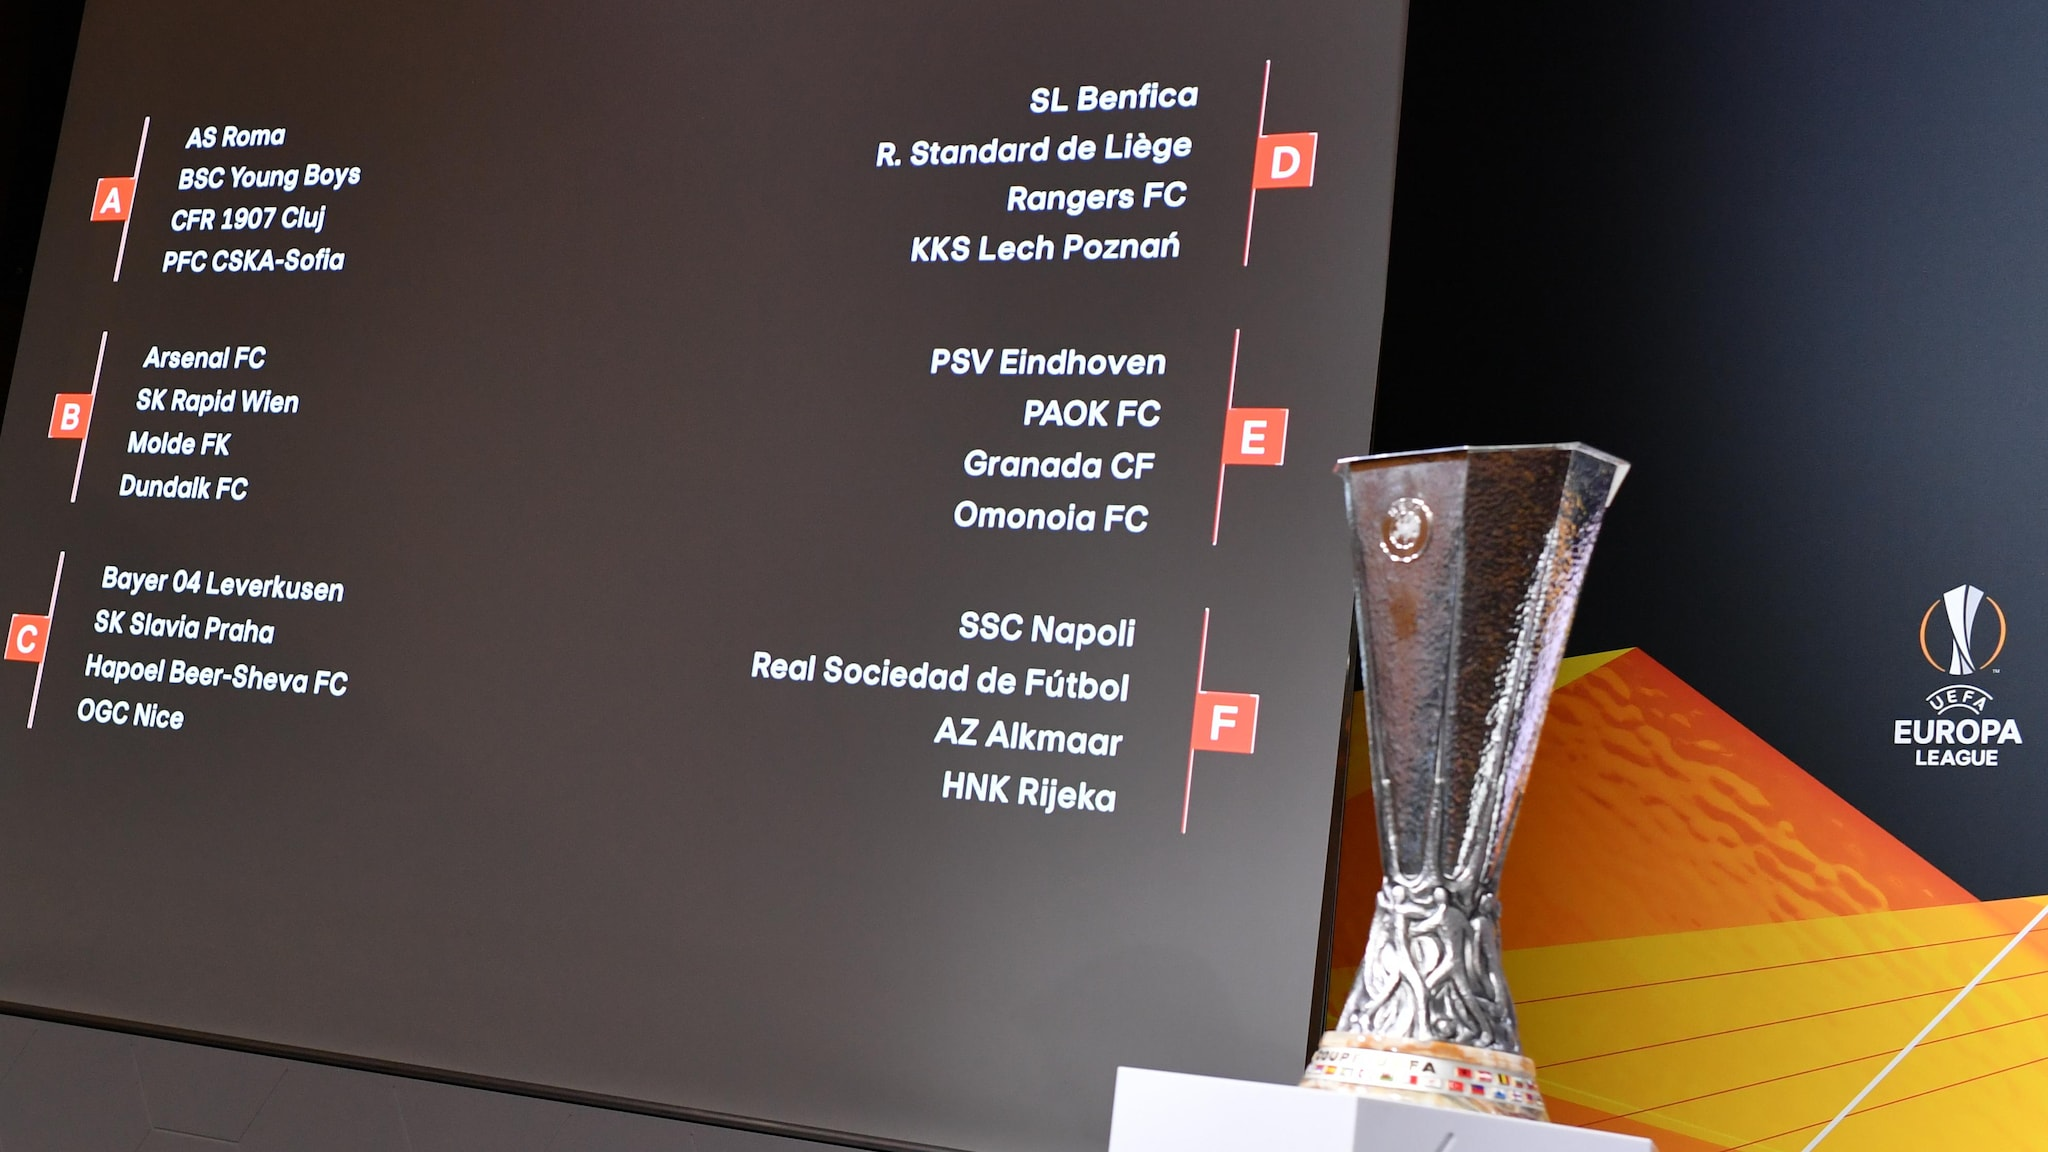 Europa League group stage draw made | UEFA Europa League | UEFA.com